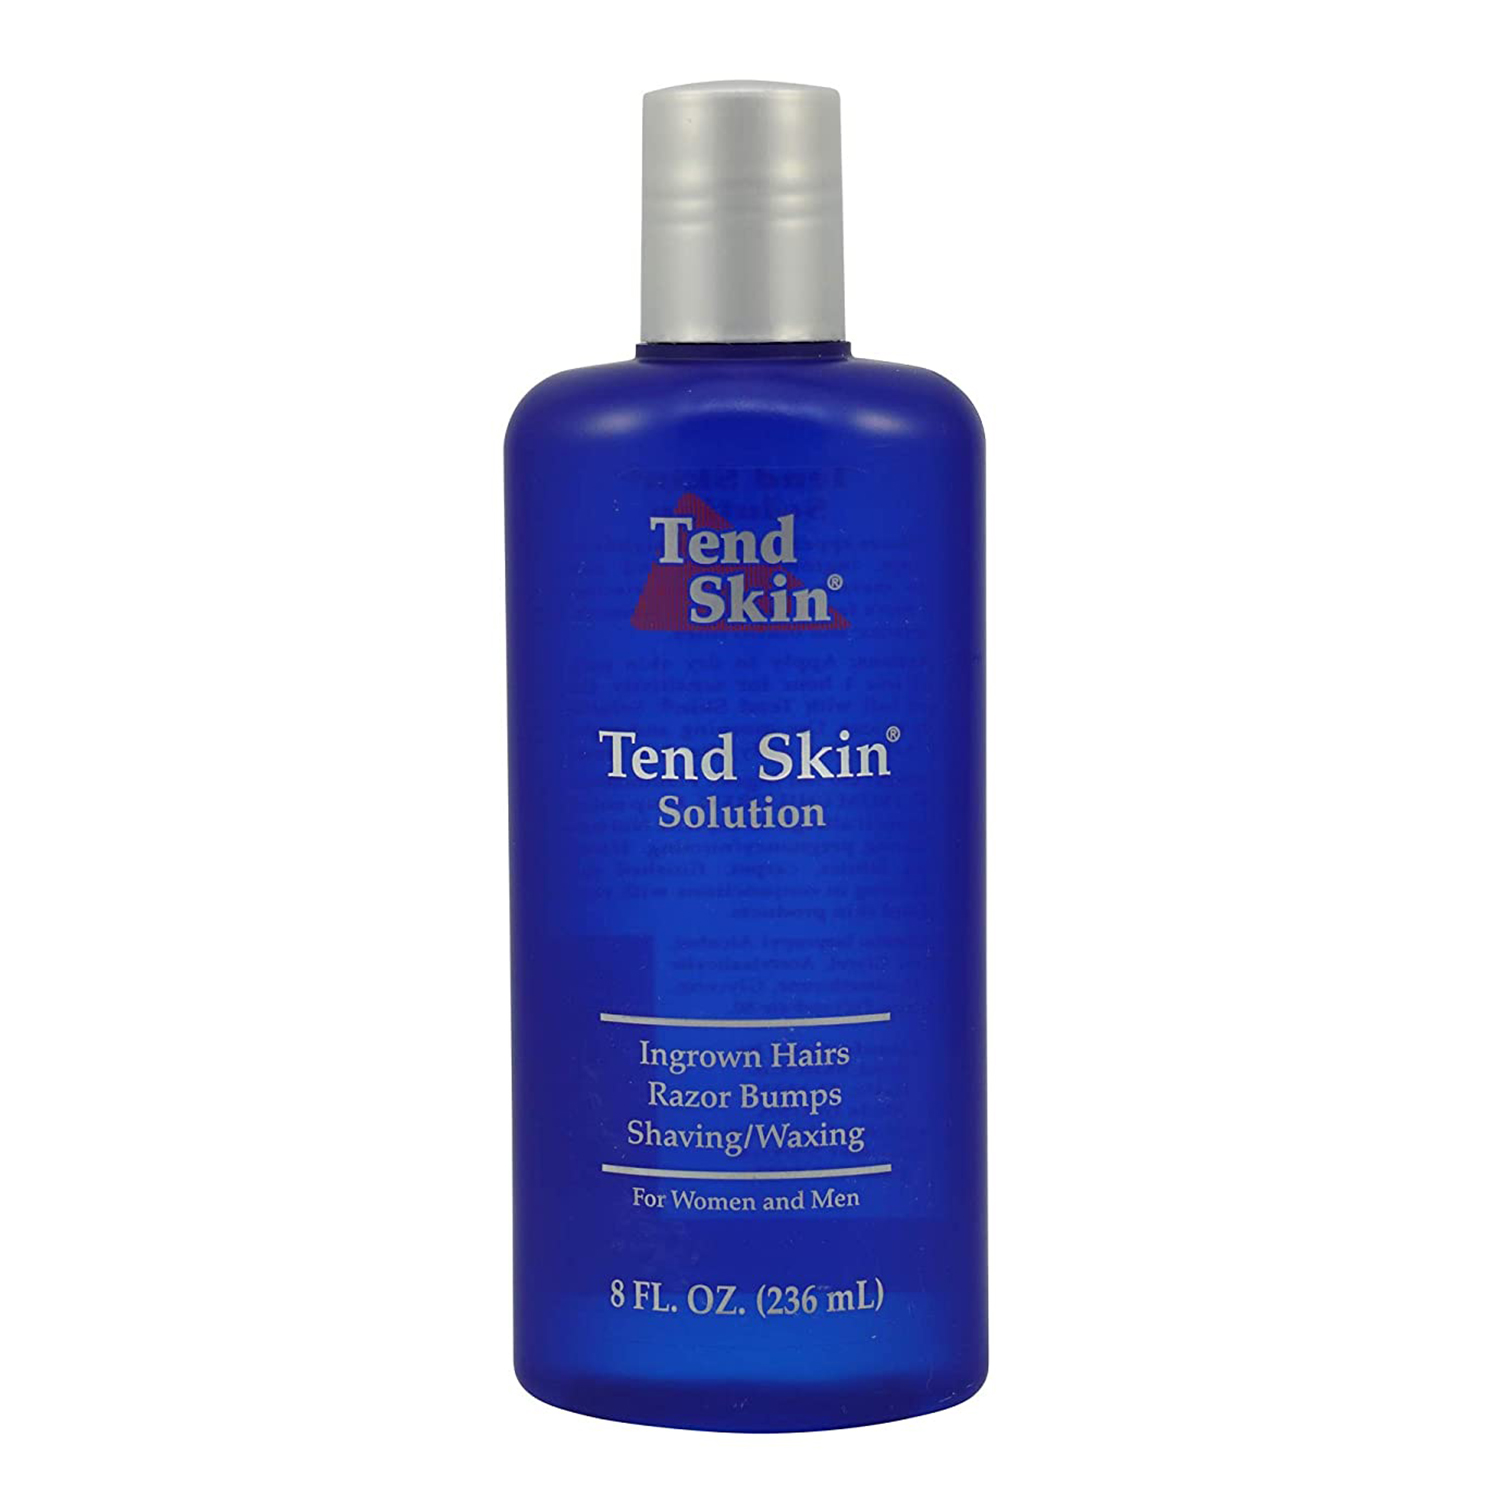 Tend Skin The Skin Care Solution For Unsightly Razor Bumps